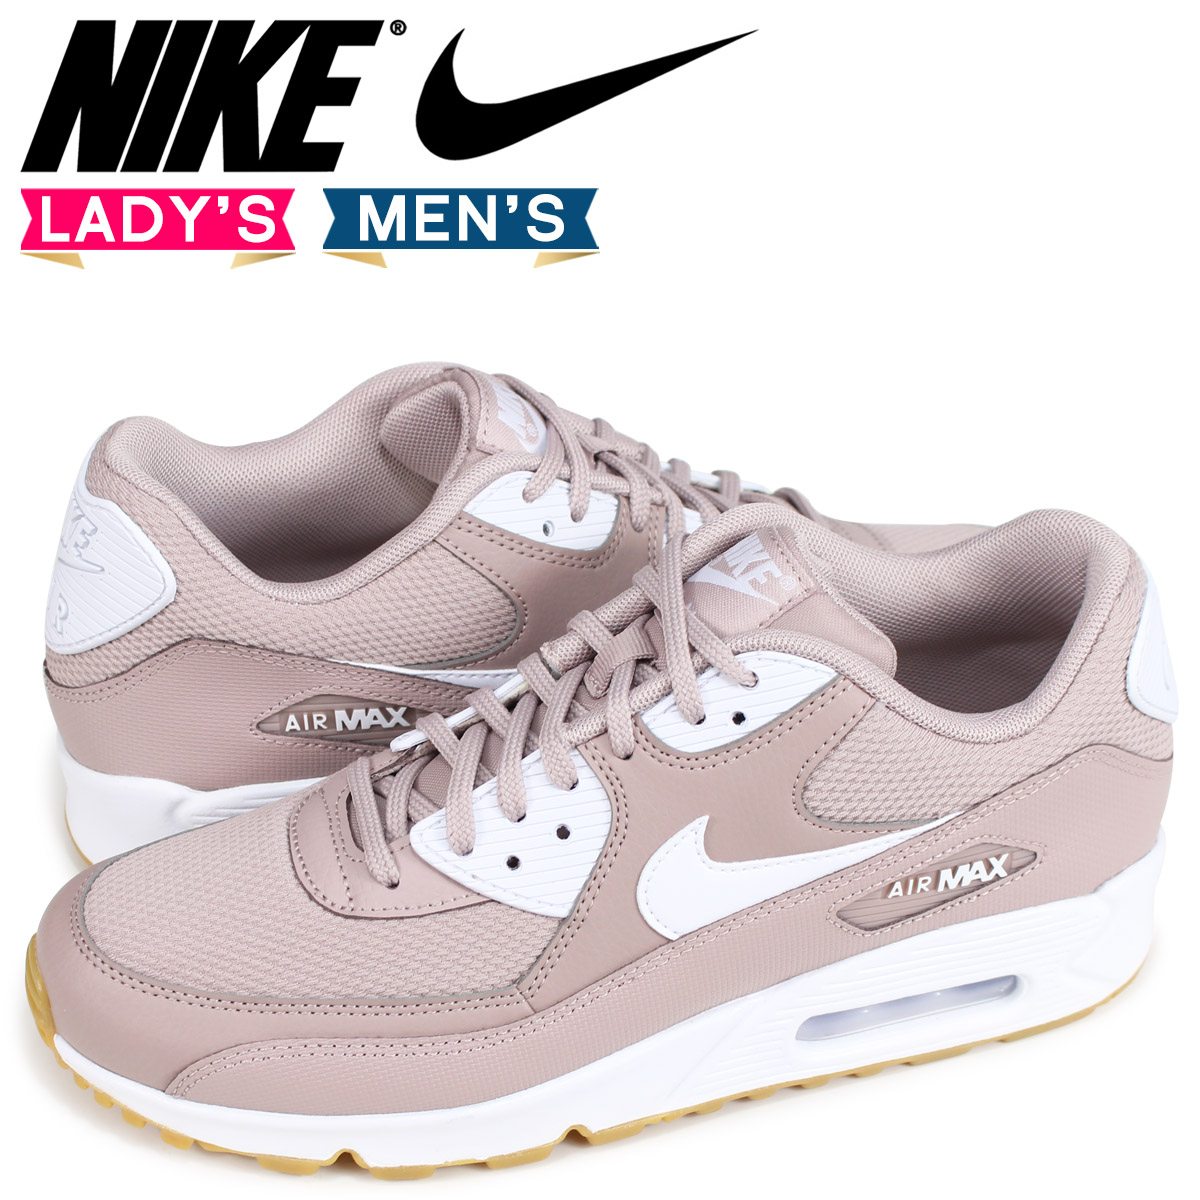 new styles e5bcc 3e904 Nike NIKE Air Max 90 lady s men s sneakers WMNS AIR MAX 90 325,213-210  purple ...